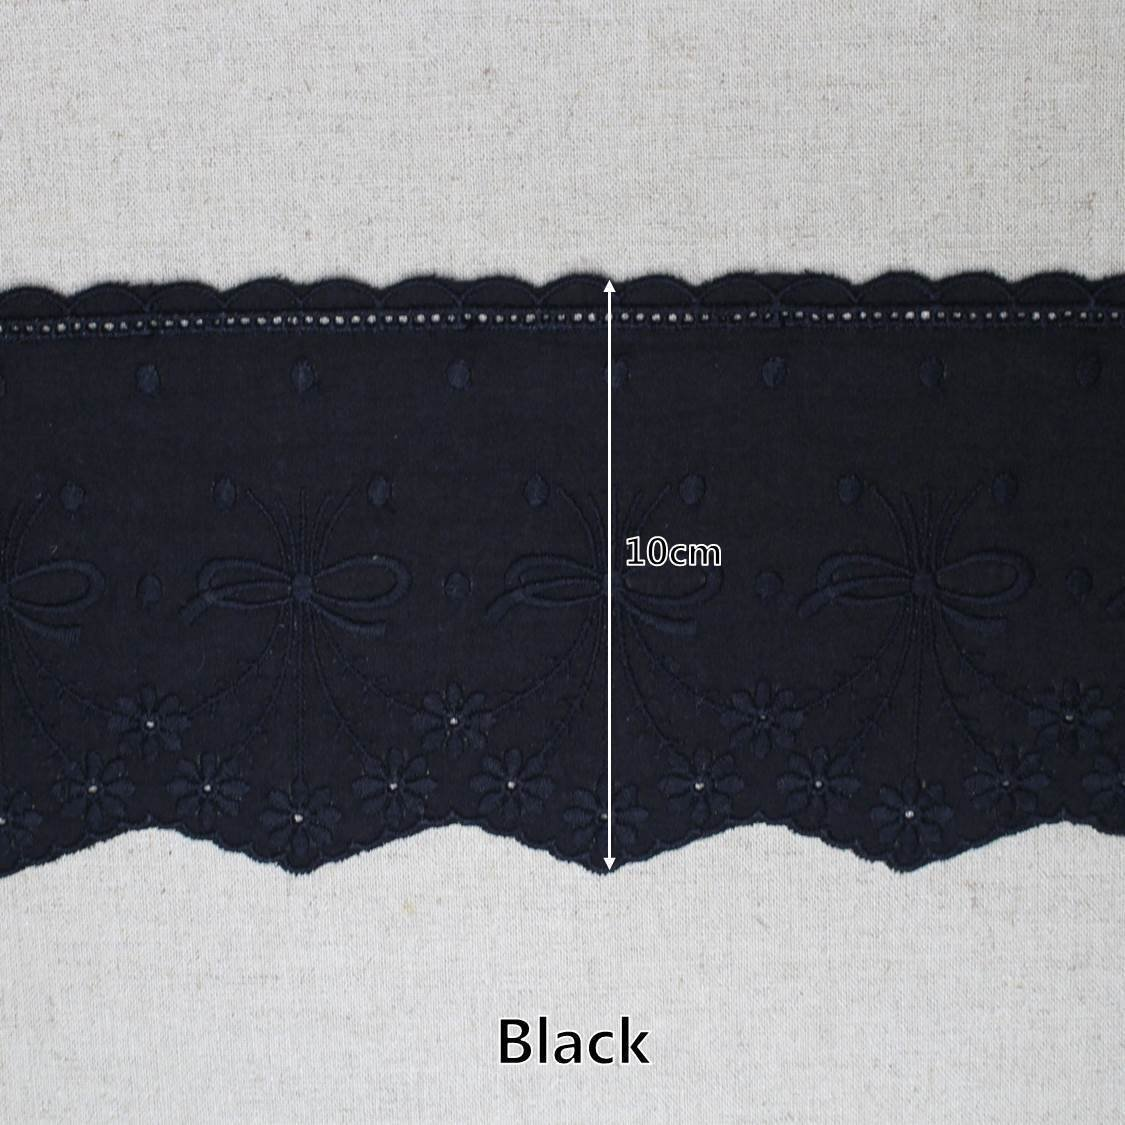 Black 14Yds Broderie Anglaise cotton eyelet lace trim 10cm YH1275A